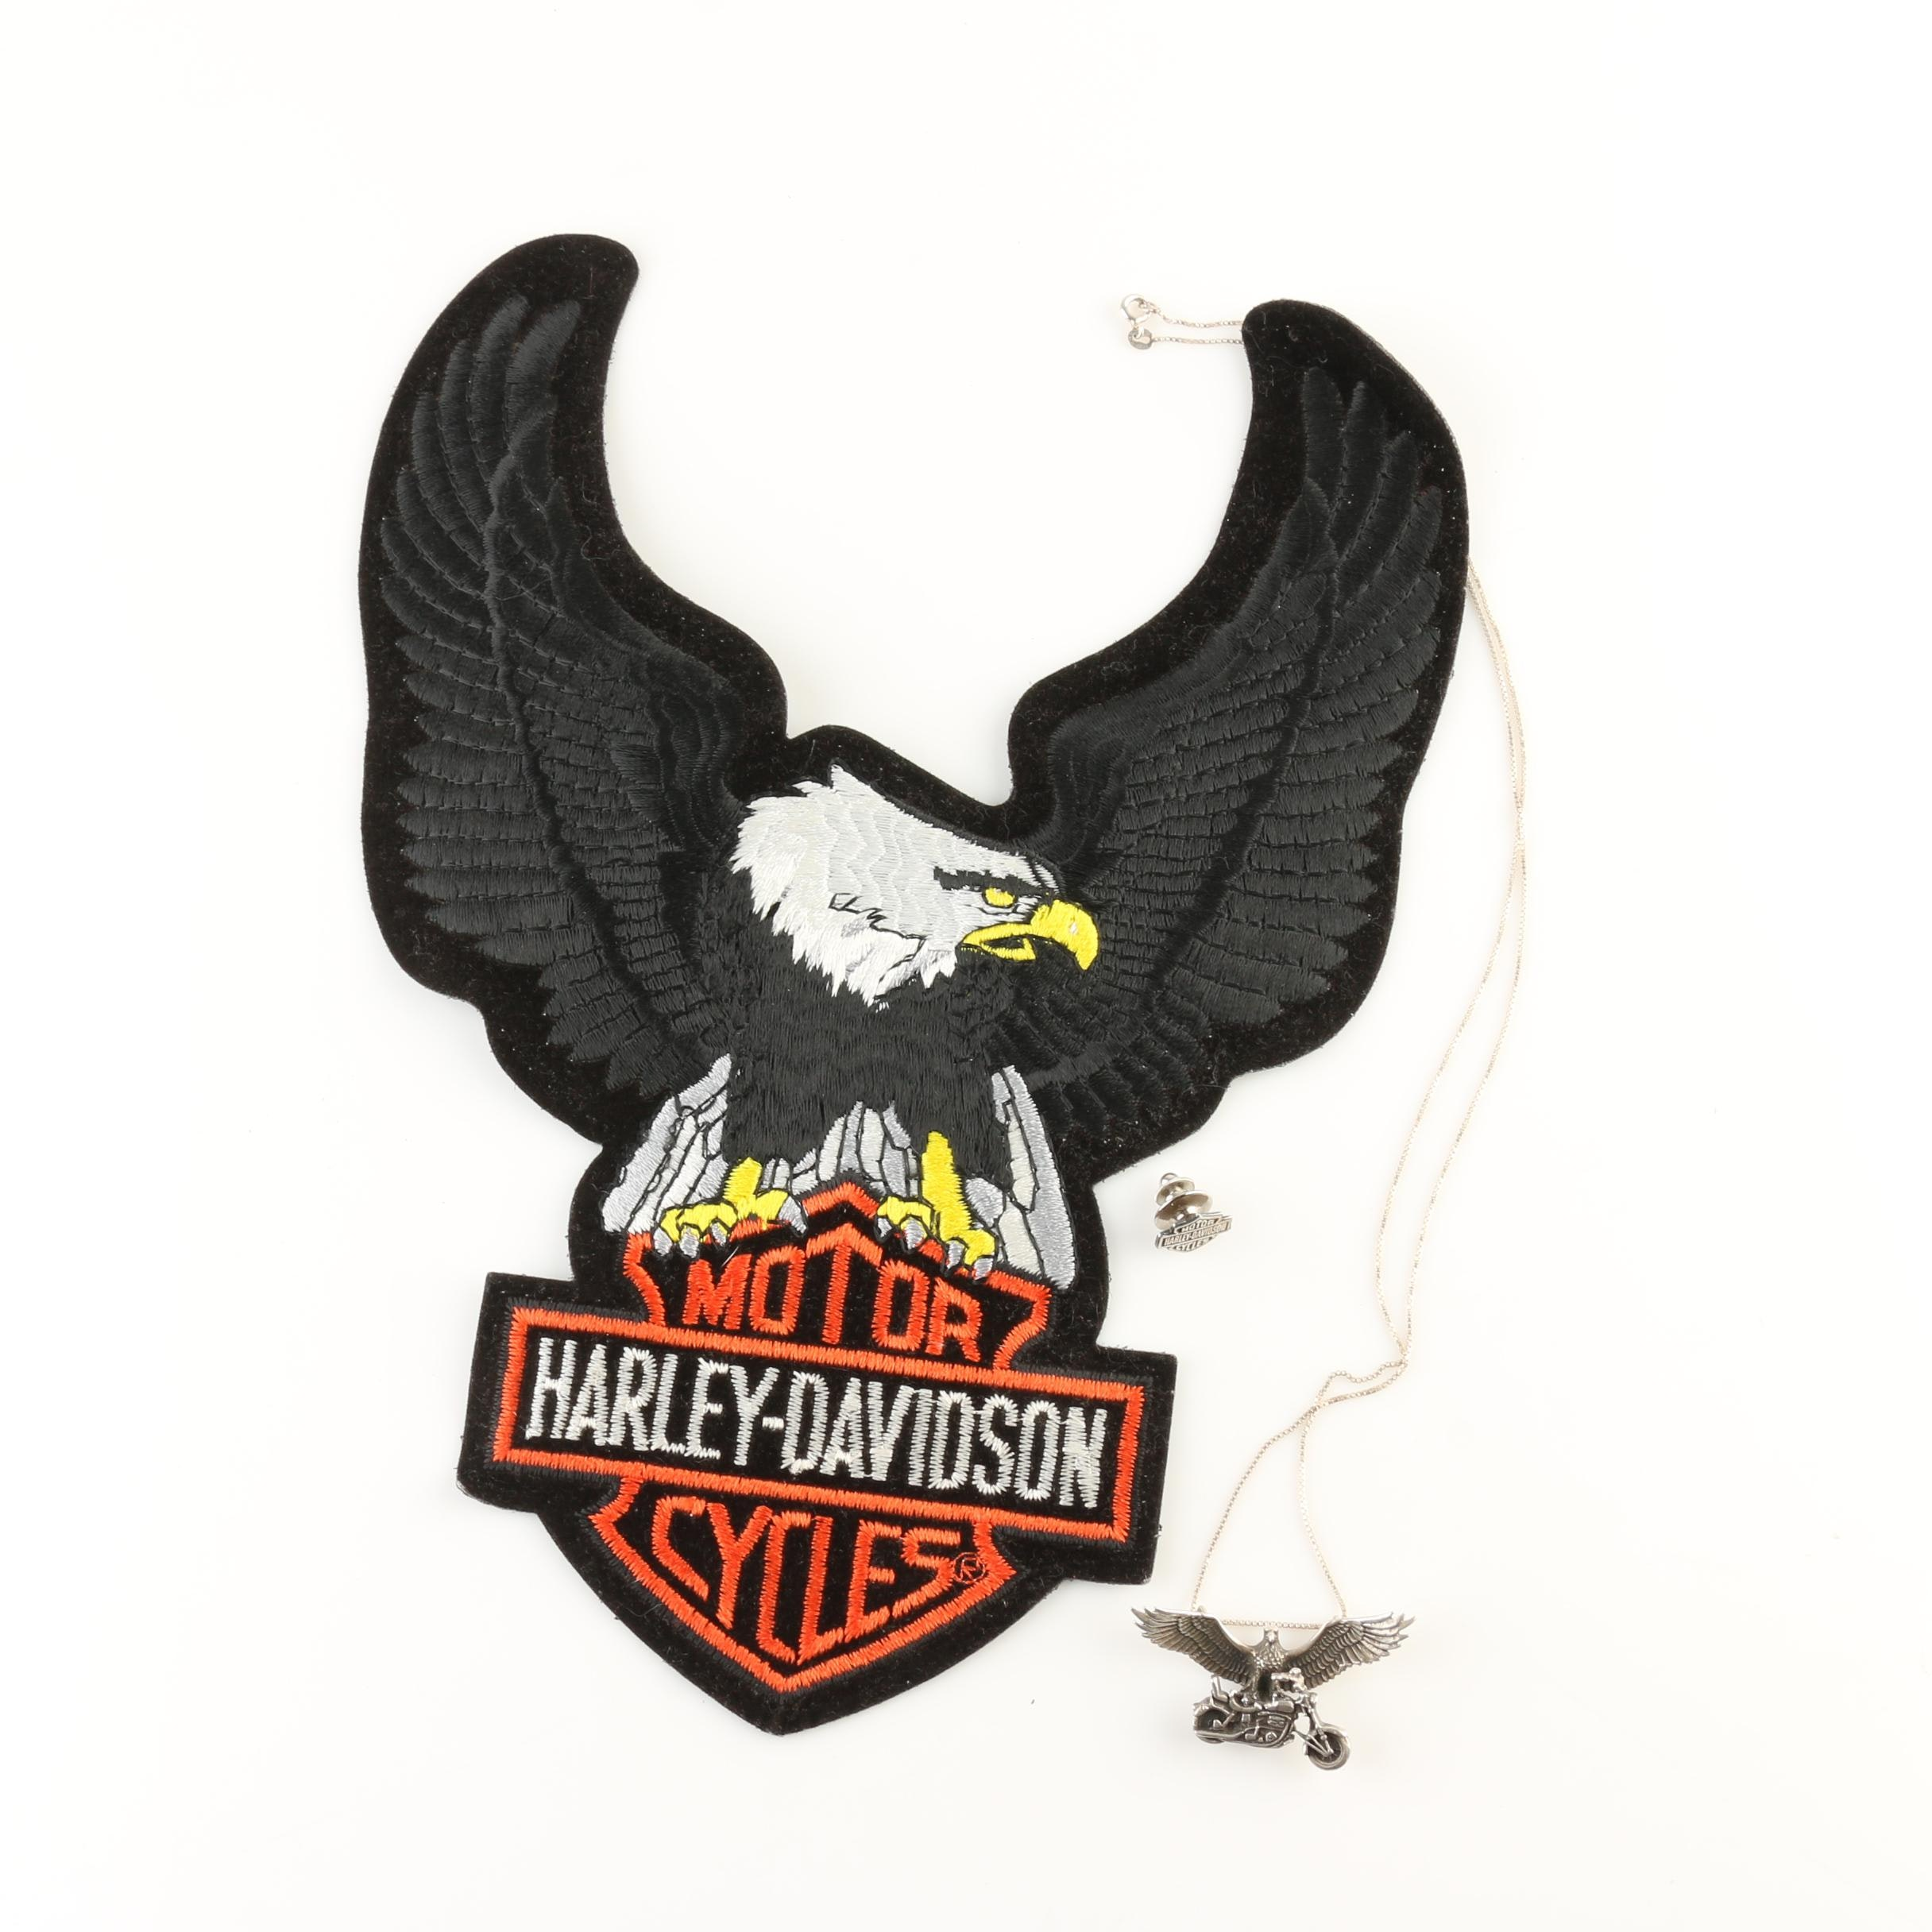 Harley Davidson Patch and Jewelry Including Sterling Silver